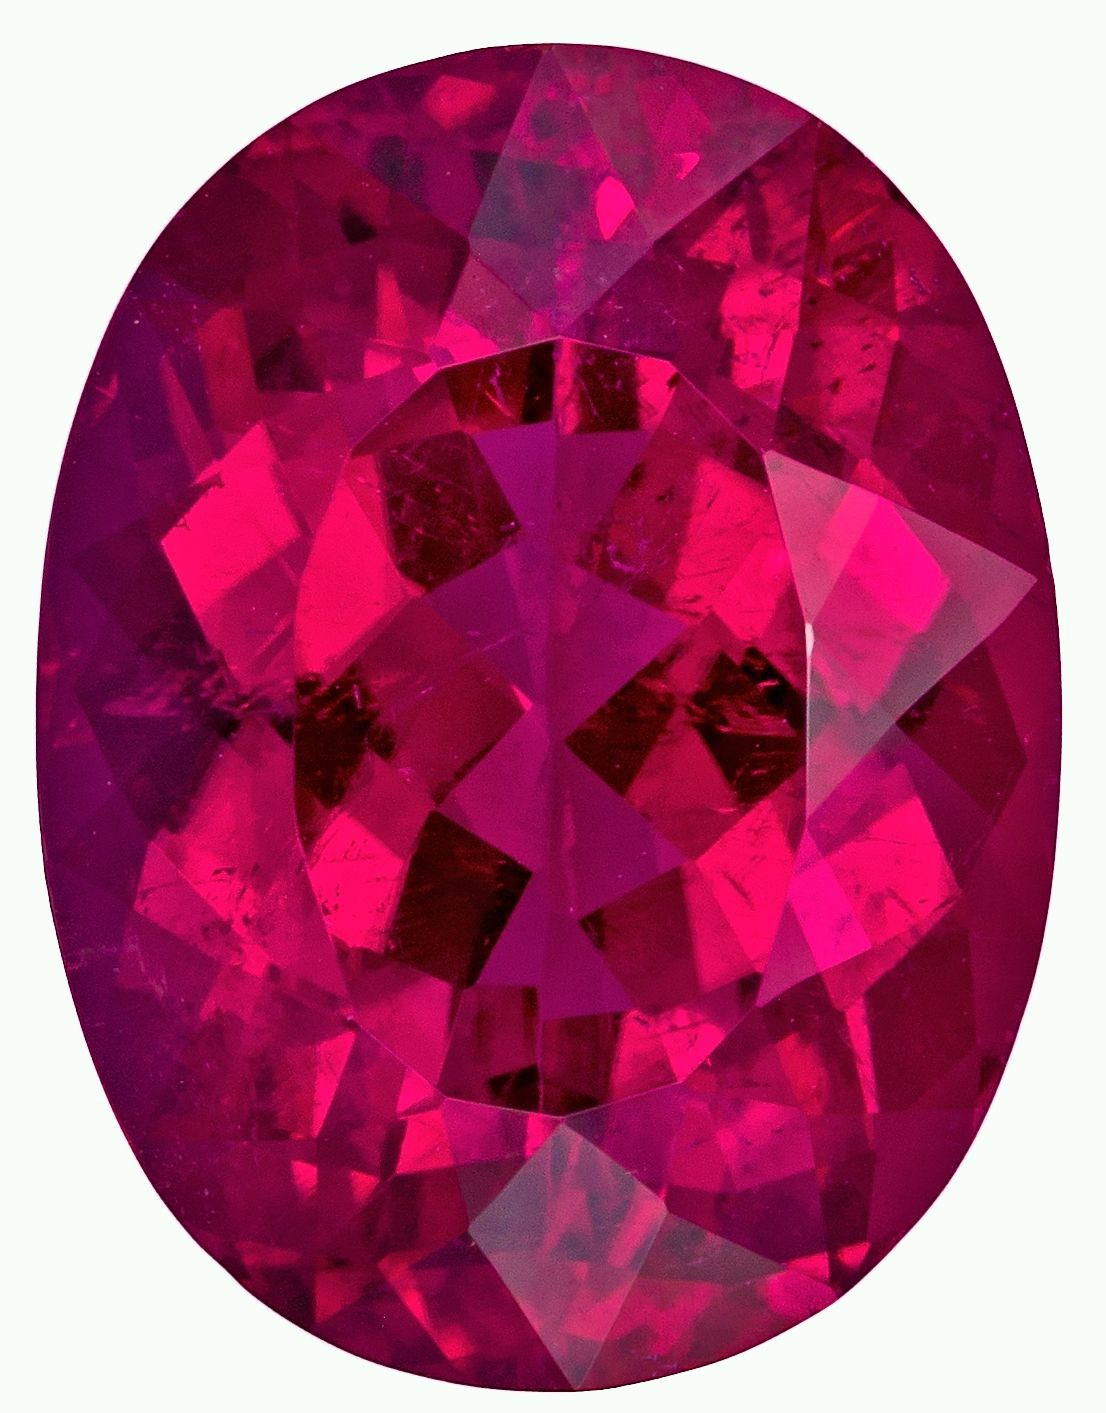 Exceptional Rubellite Tourmaline 7.34 carats, Oval shape gemstone, 14.3 x 10.9  mm